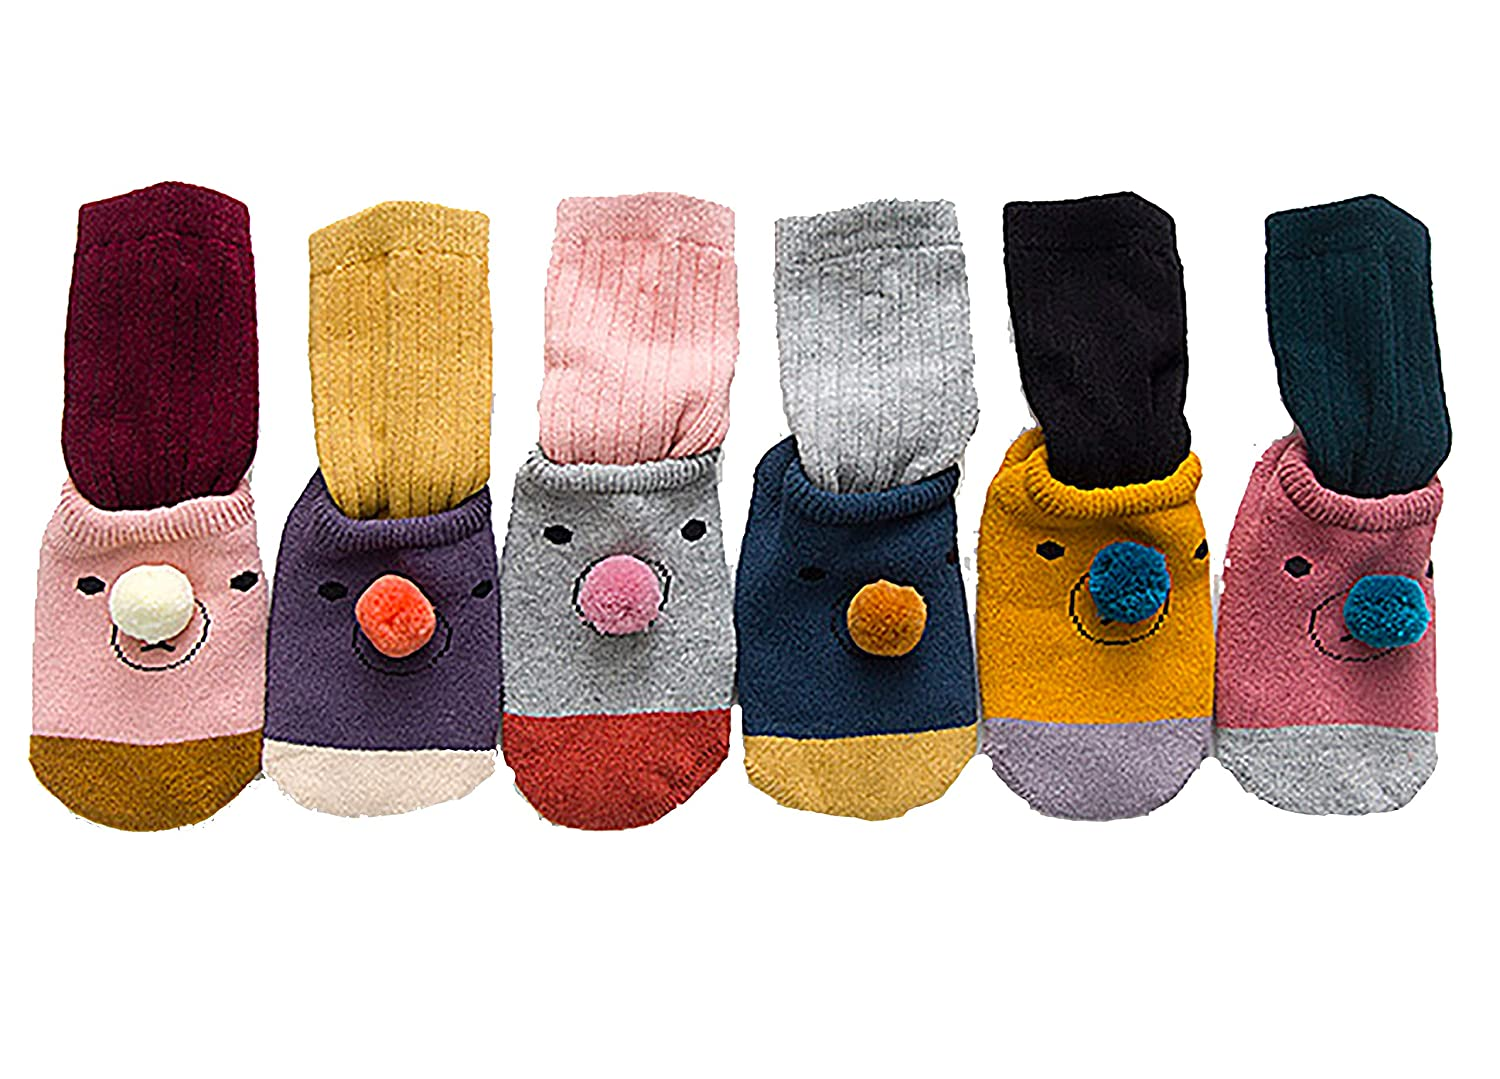 plum 2-1 socks For 1-12 Months Toddler Baby Unisex Baby Socks 3 Pairs Cotton Booties with Non Skid Bottom Soft and Safe Booties